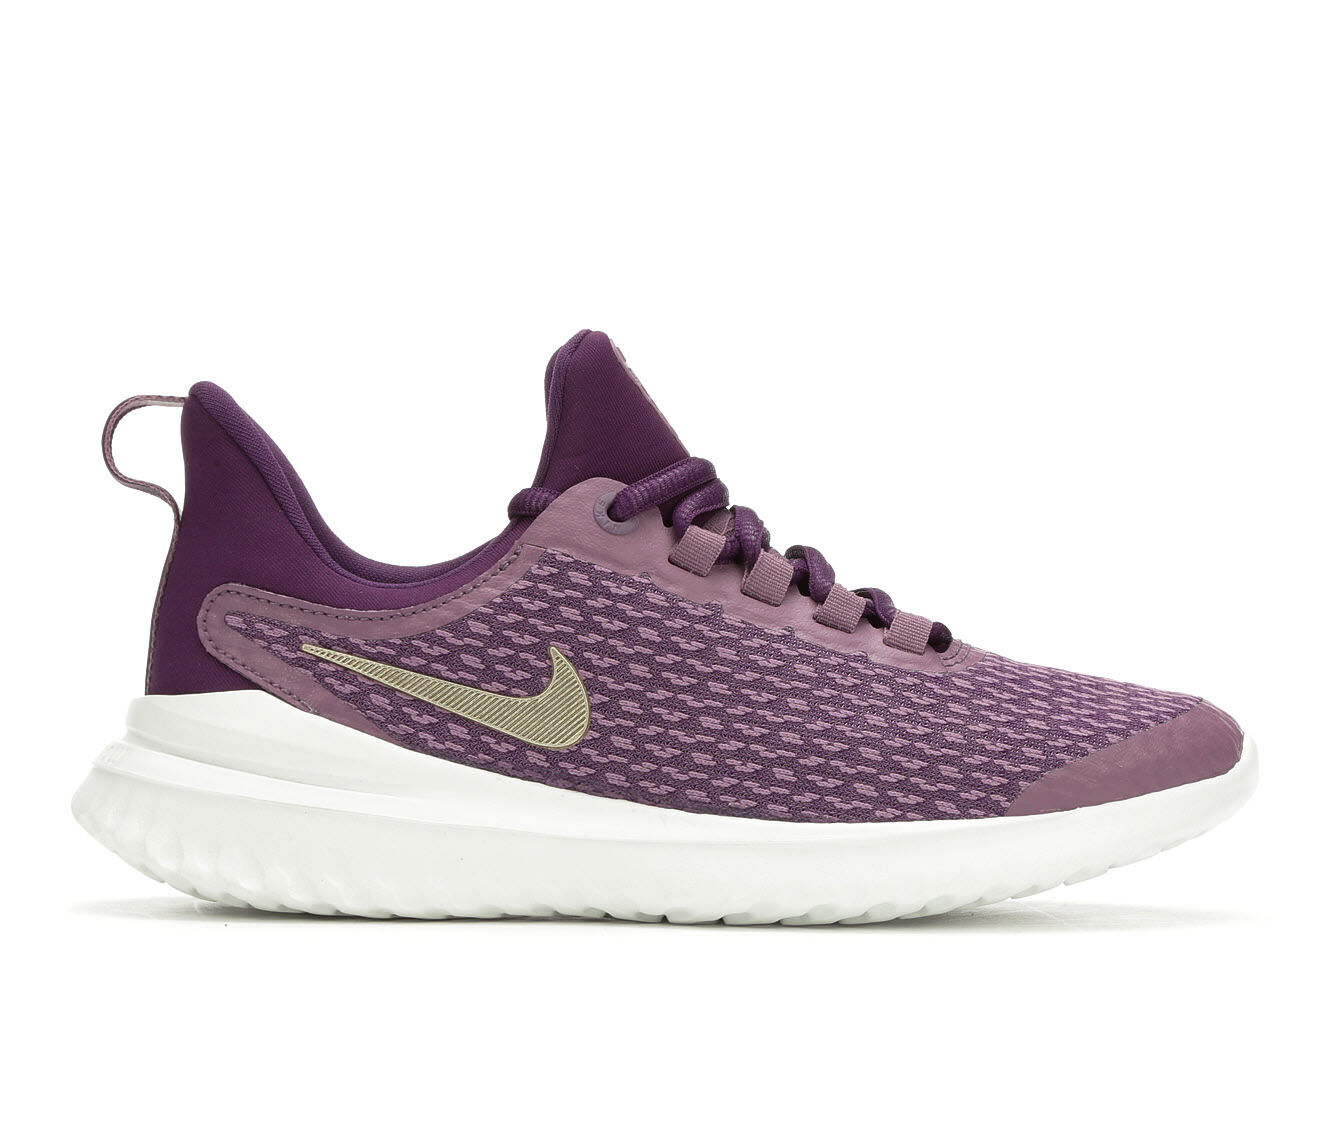 Nike Girls' Nike Big Kid Air Max Sequent 3 Running Shoes (Pink Size 4.5 ) from Shoe Carnival | Shop